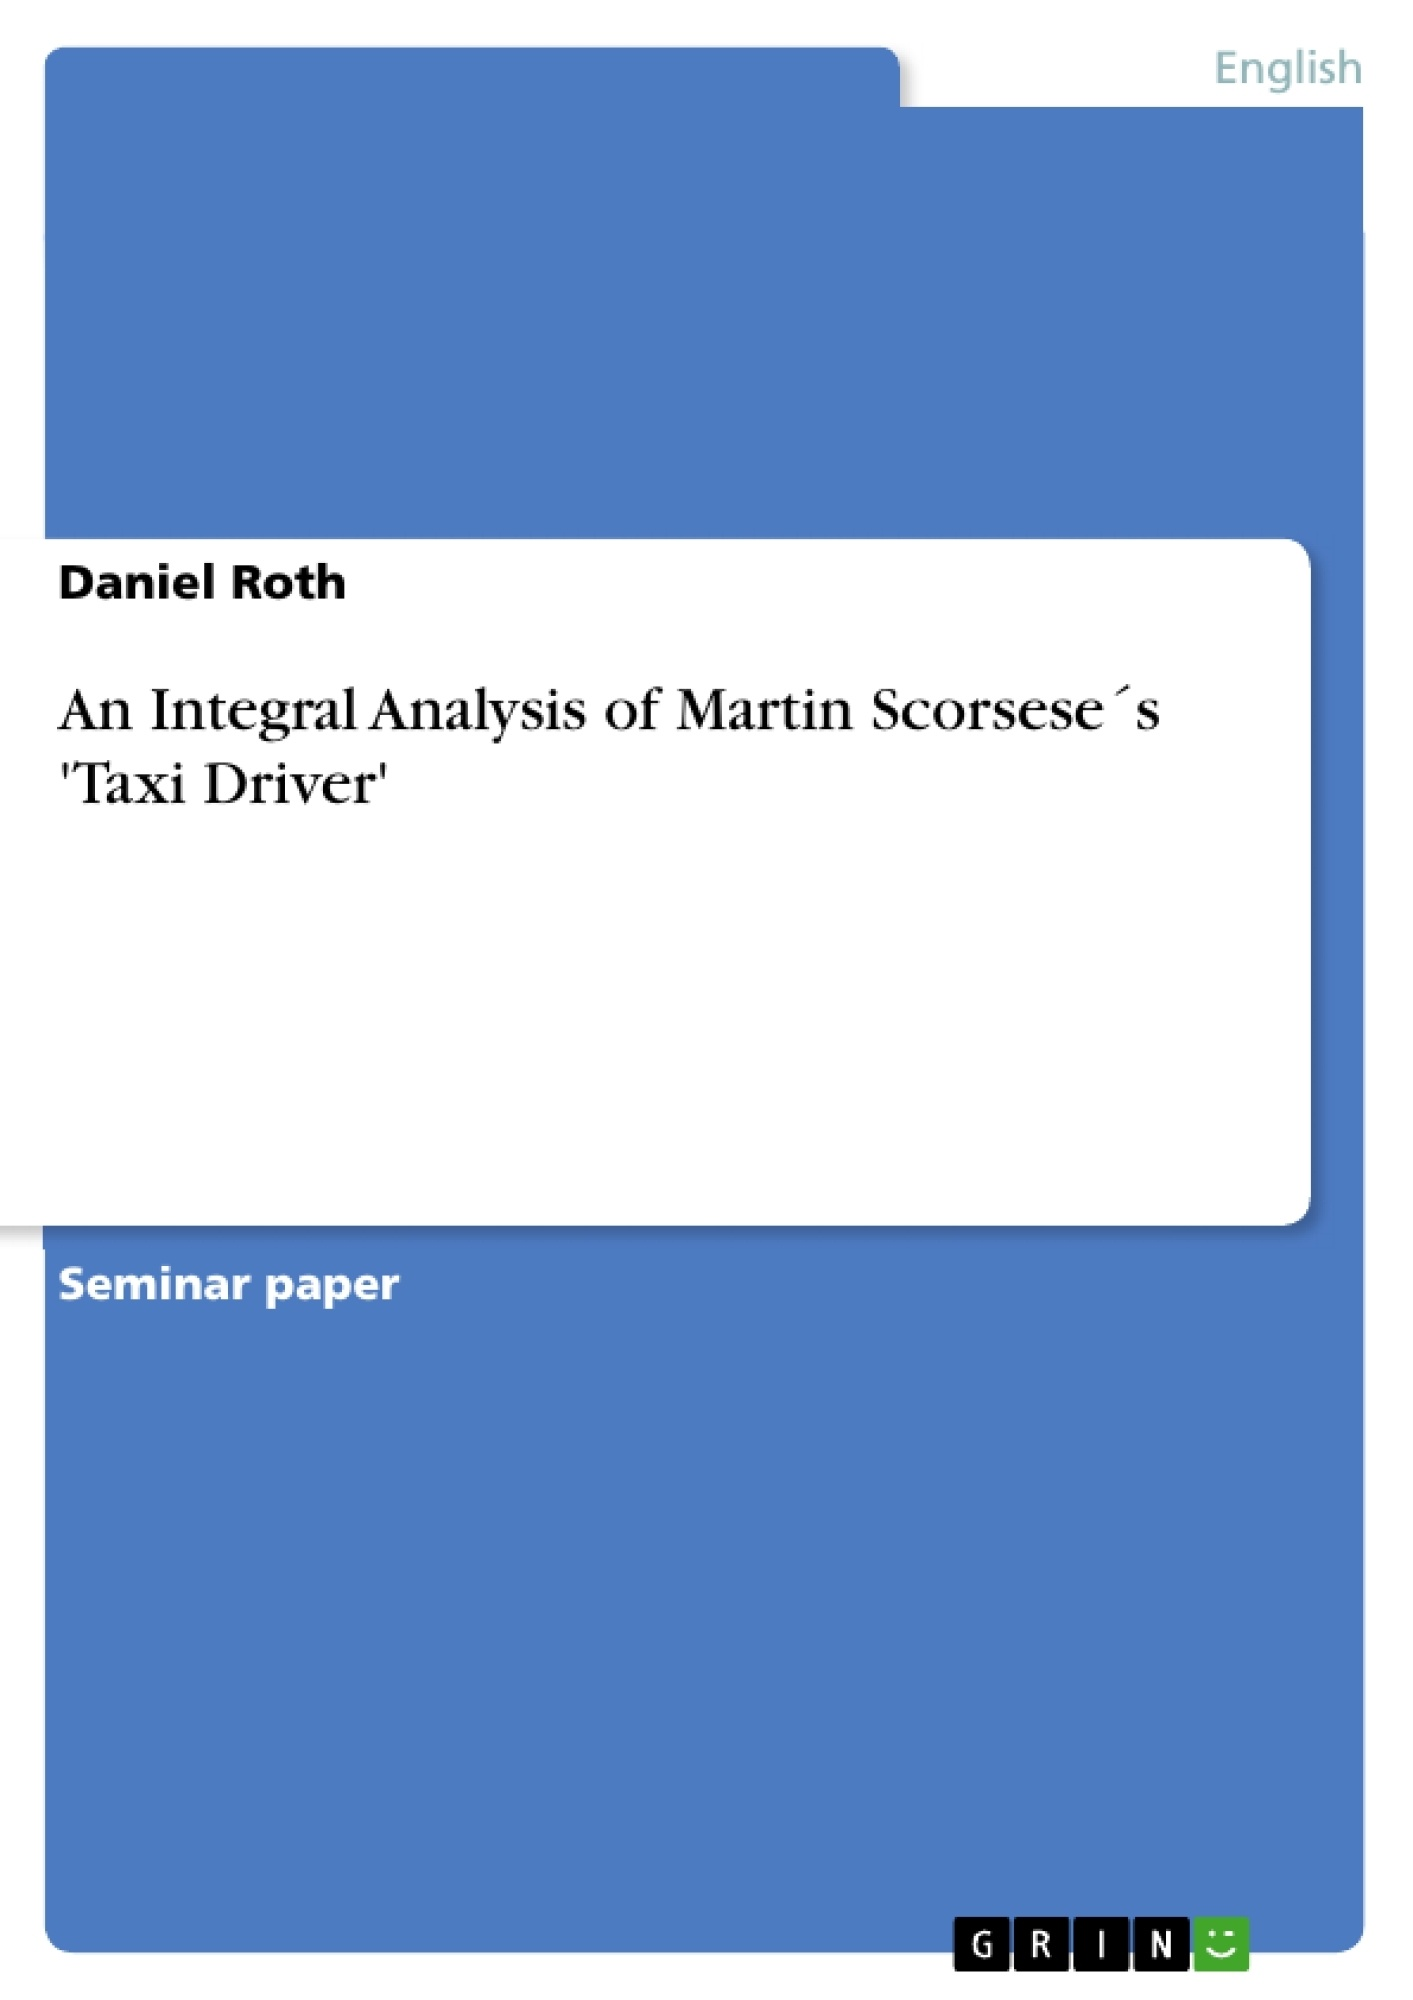 Title: An Integral Analysis of Martin Scorsese´s 'Taxi Driver'